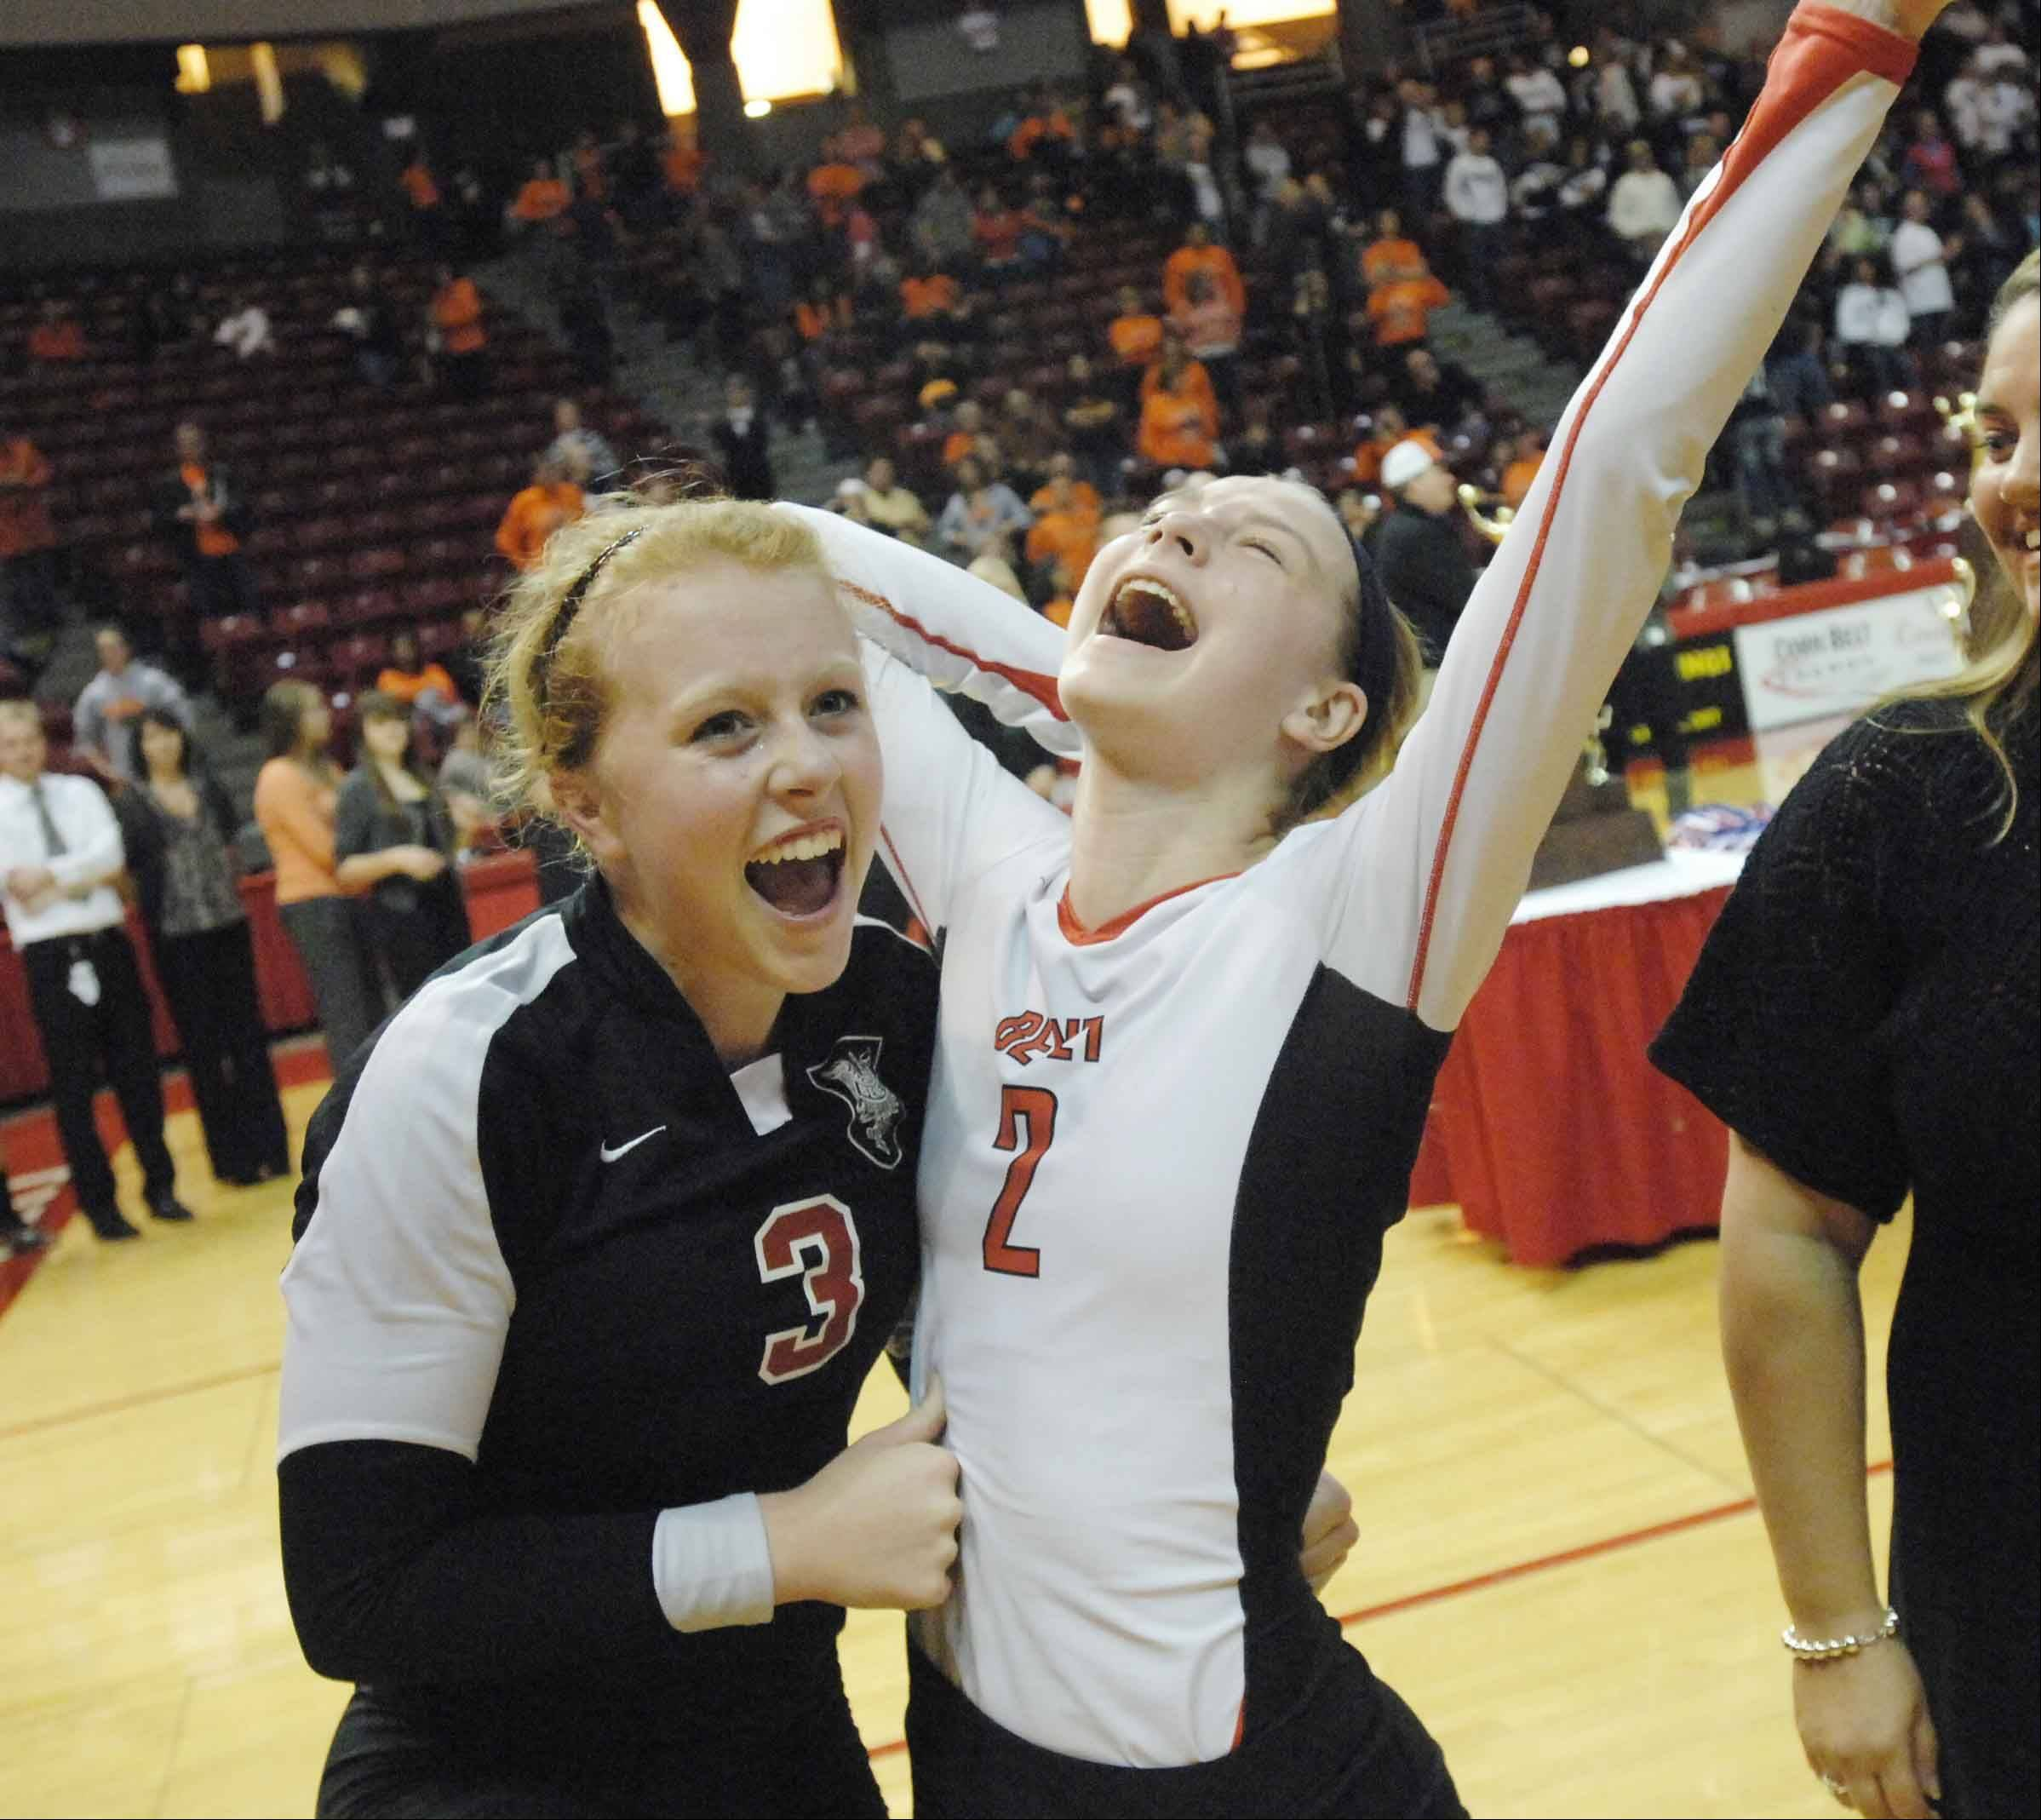 Benet vs. Cary-Grove in the Class 4A volleyball championship in Normal Saturday.